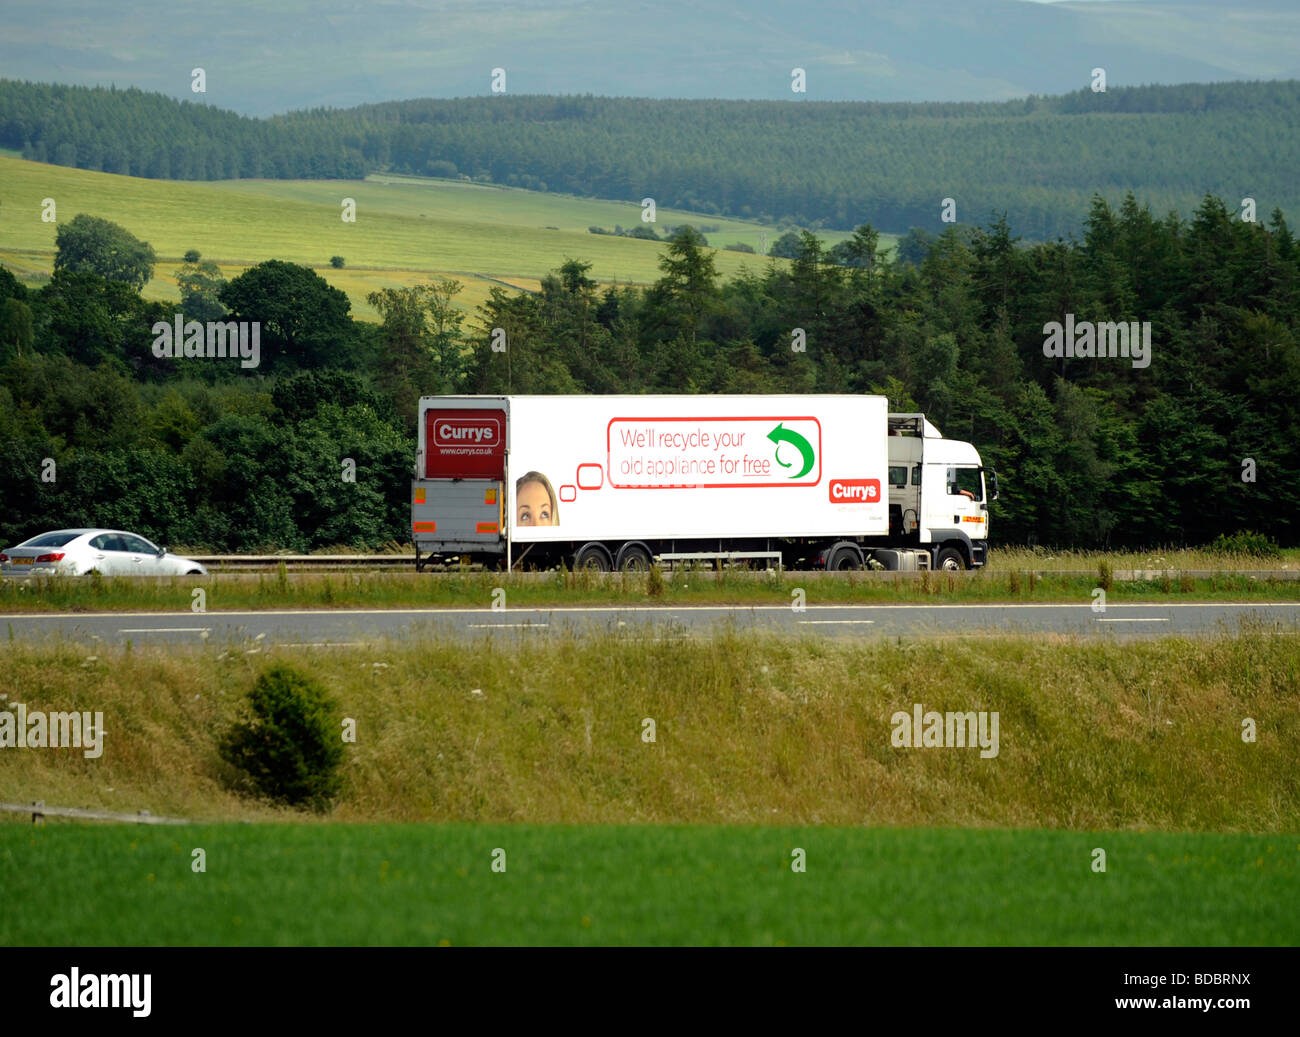 Dhl Truck Stock Photos & Dhl Truck Stock Images - Alamy